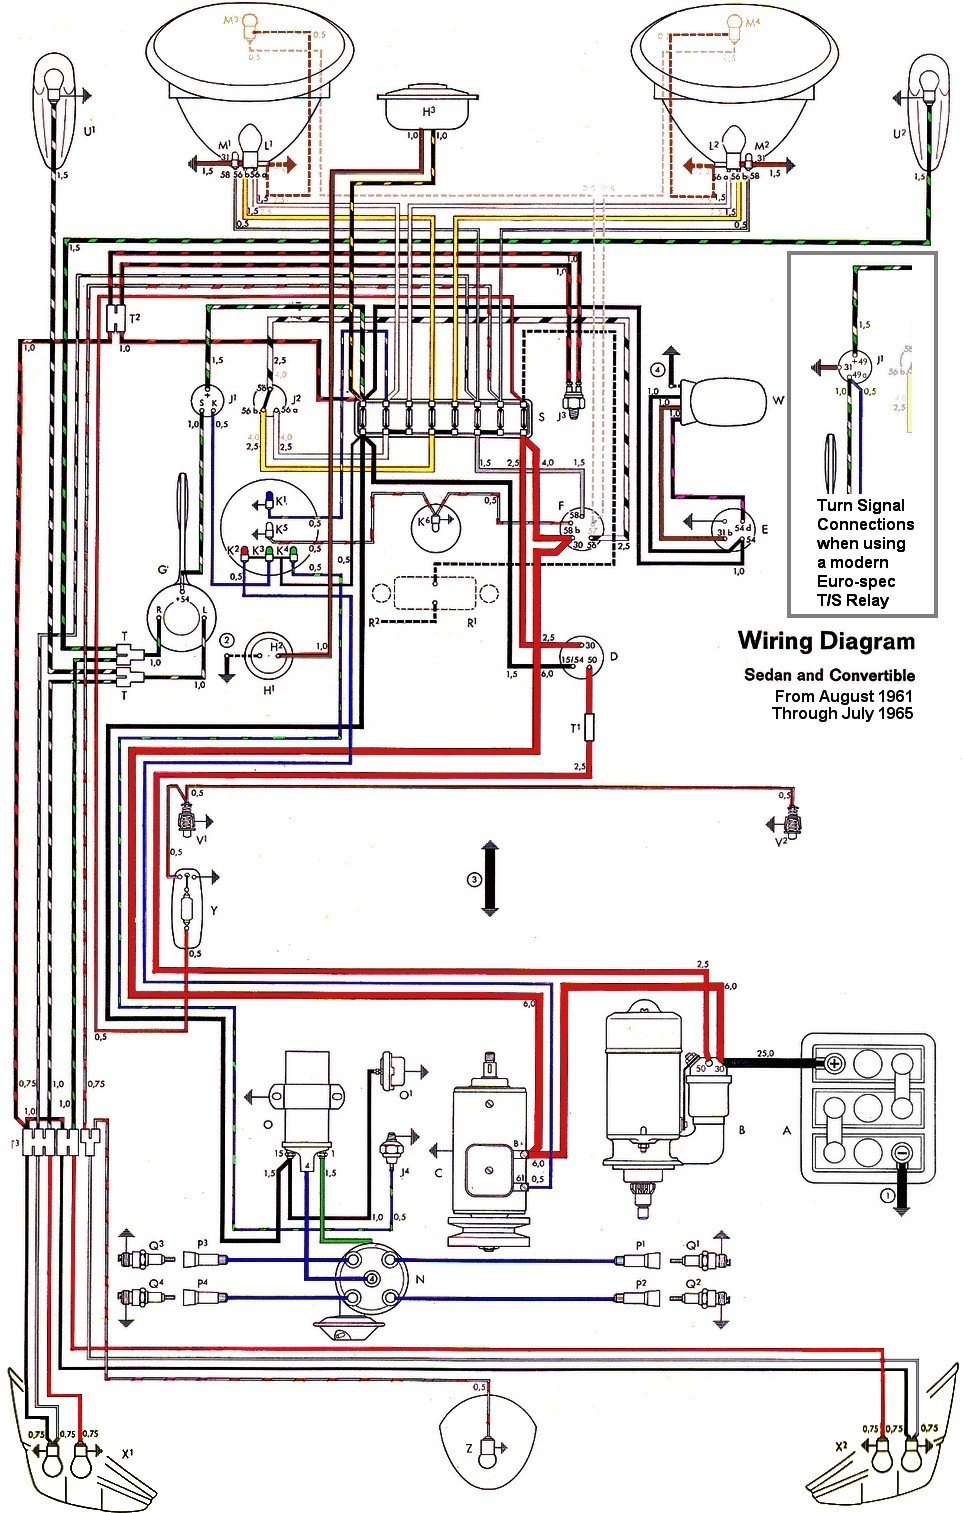 bug_62 65withinset wiring diagram vw beetle sedan and convertible 1961 1965 vw Basic Electrical Wiring Diagrams at edmiracle.co